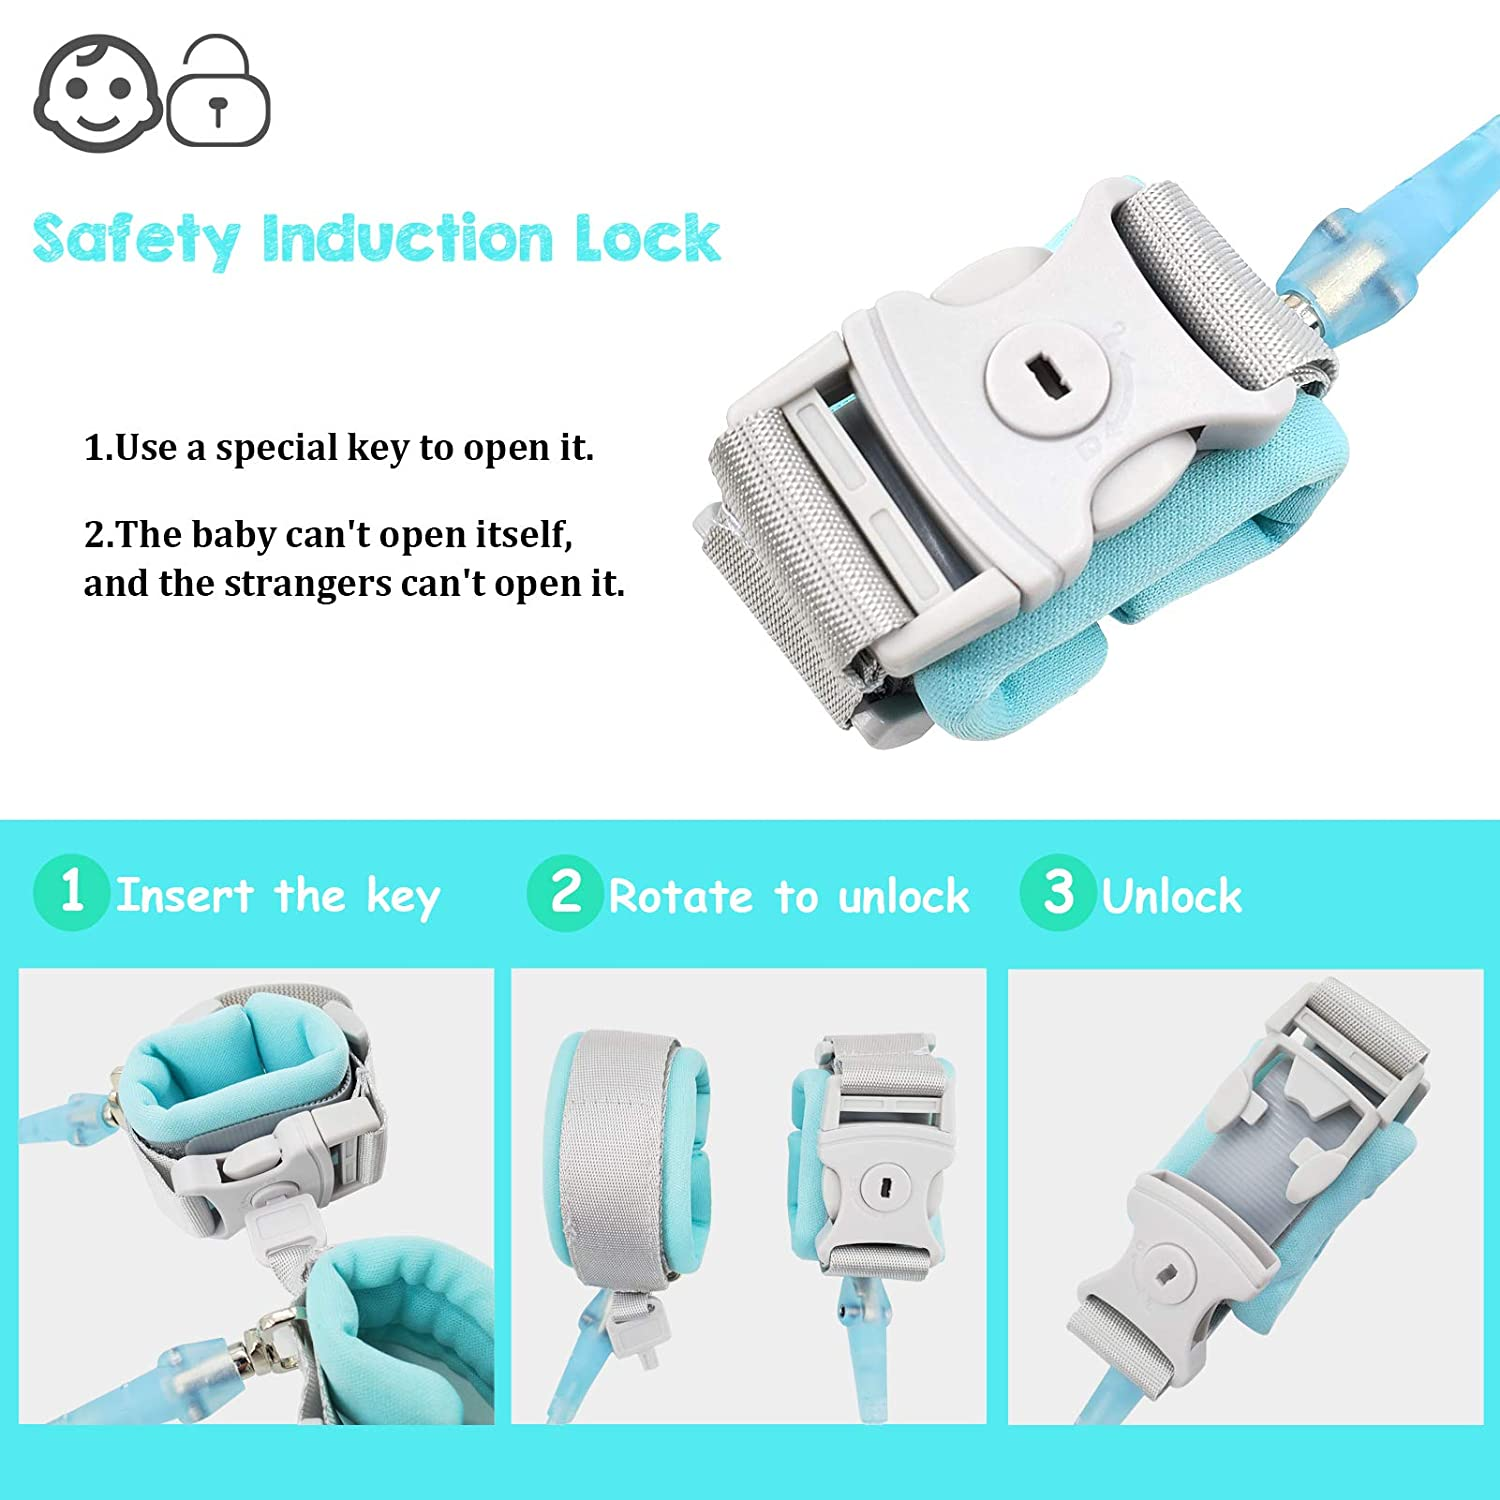 Toddler Leash for Kids Walking Safety   Child Wrist & Hand Leash for Baby & Kids - Anti-Cut Version with Safety Lock and Key - 2Pack (Light Blue, 4.9ft + 8.2ft)